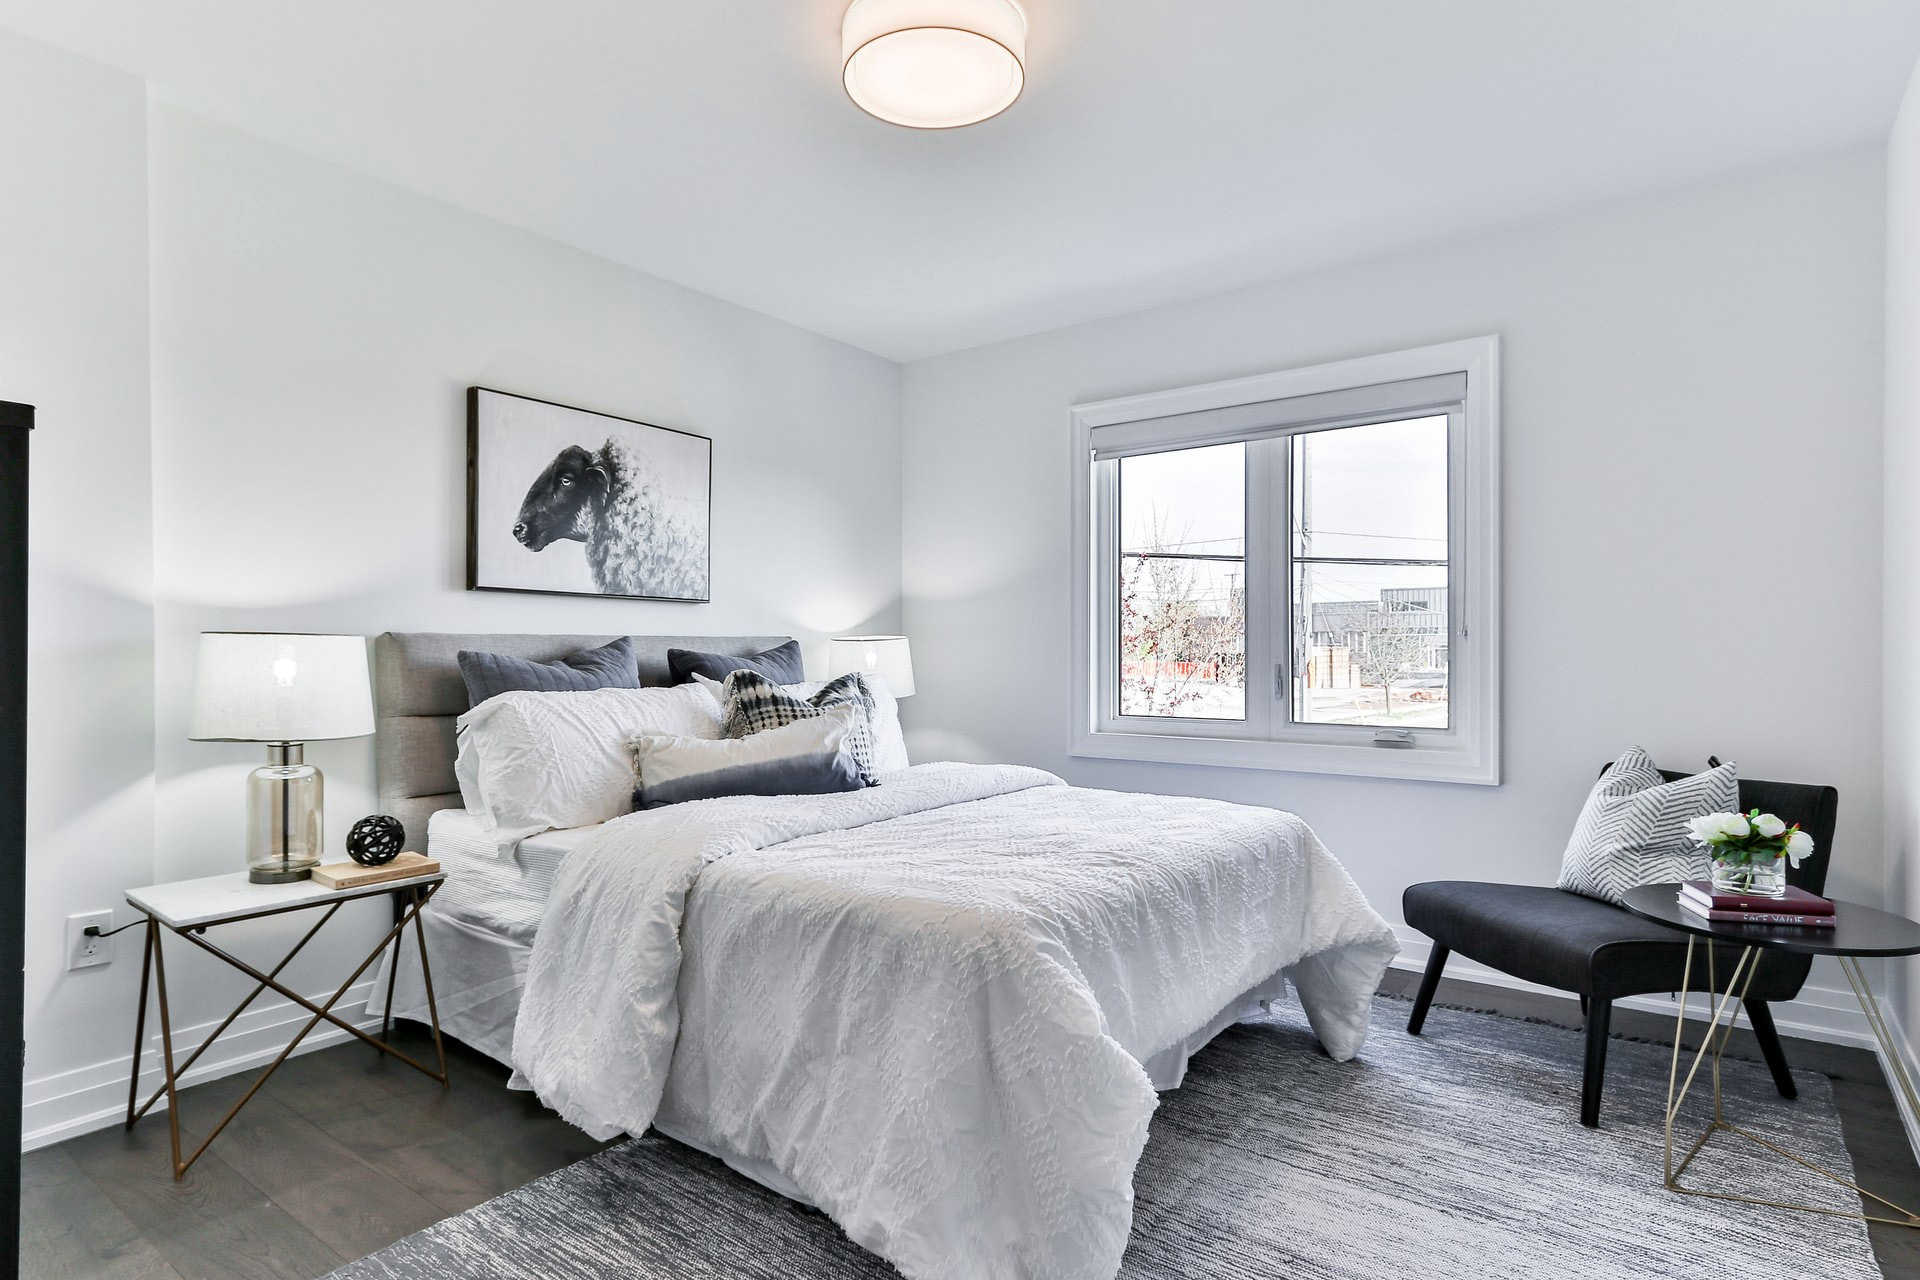 Modern white bedroom with double bed and black chair